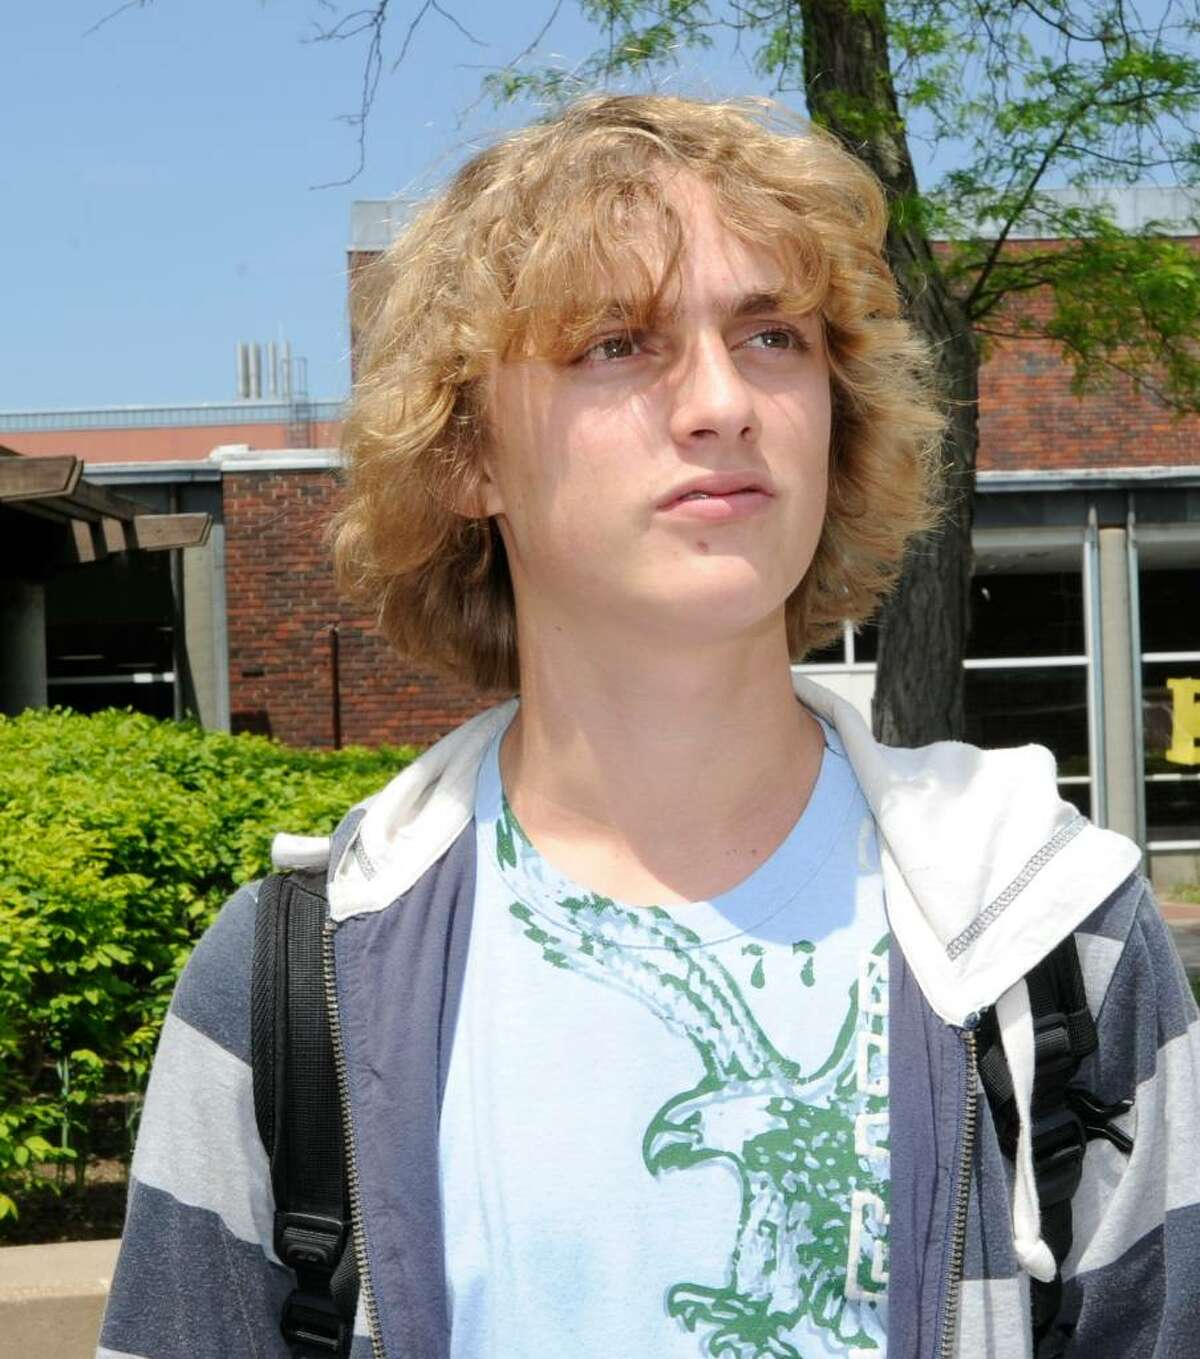 Alexander Ertel, 15, a sophmore at Greenwich High School speaks about cell phone usage at the school, on Thursday, May 6, 2010.